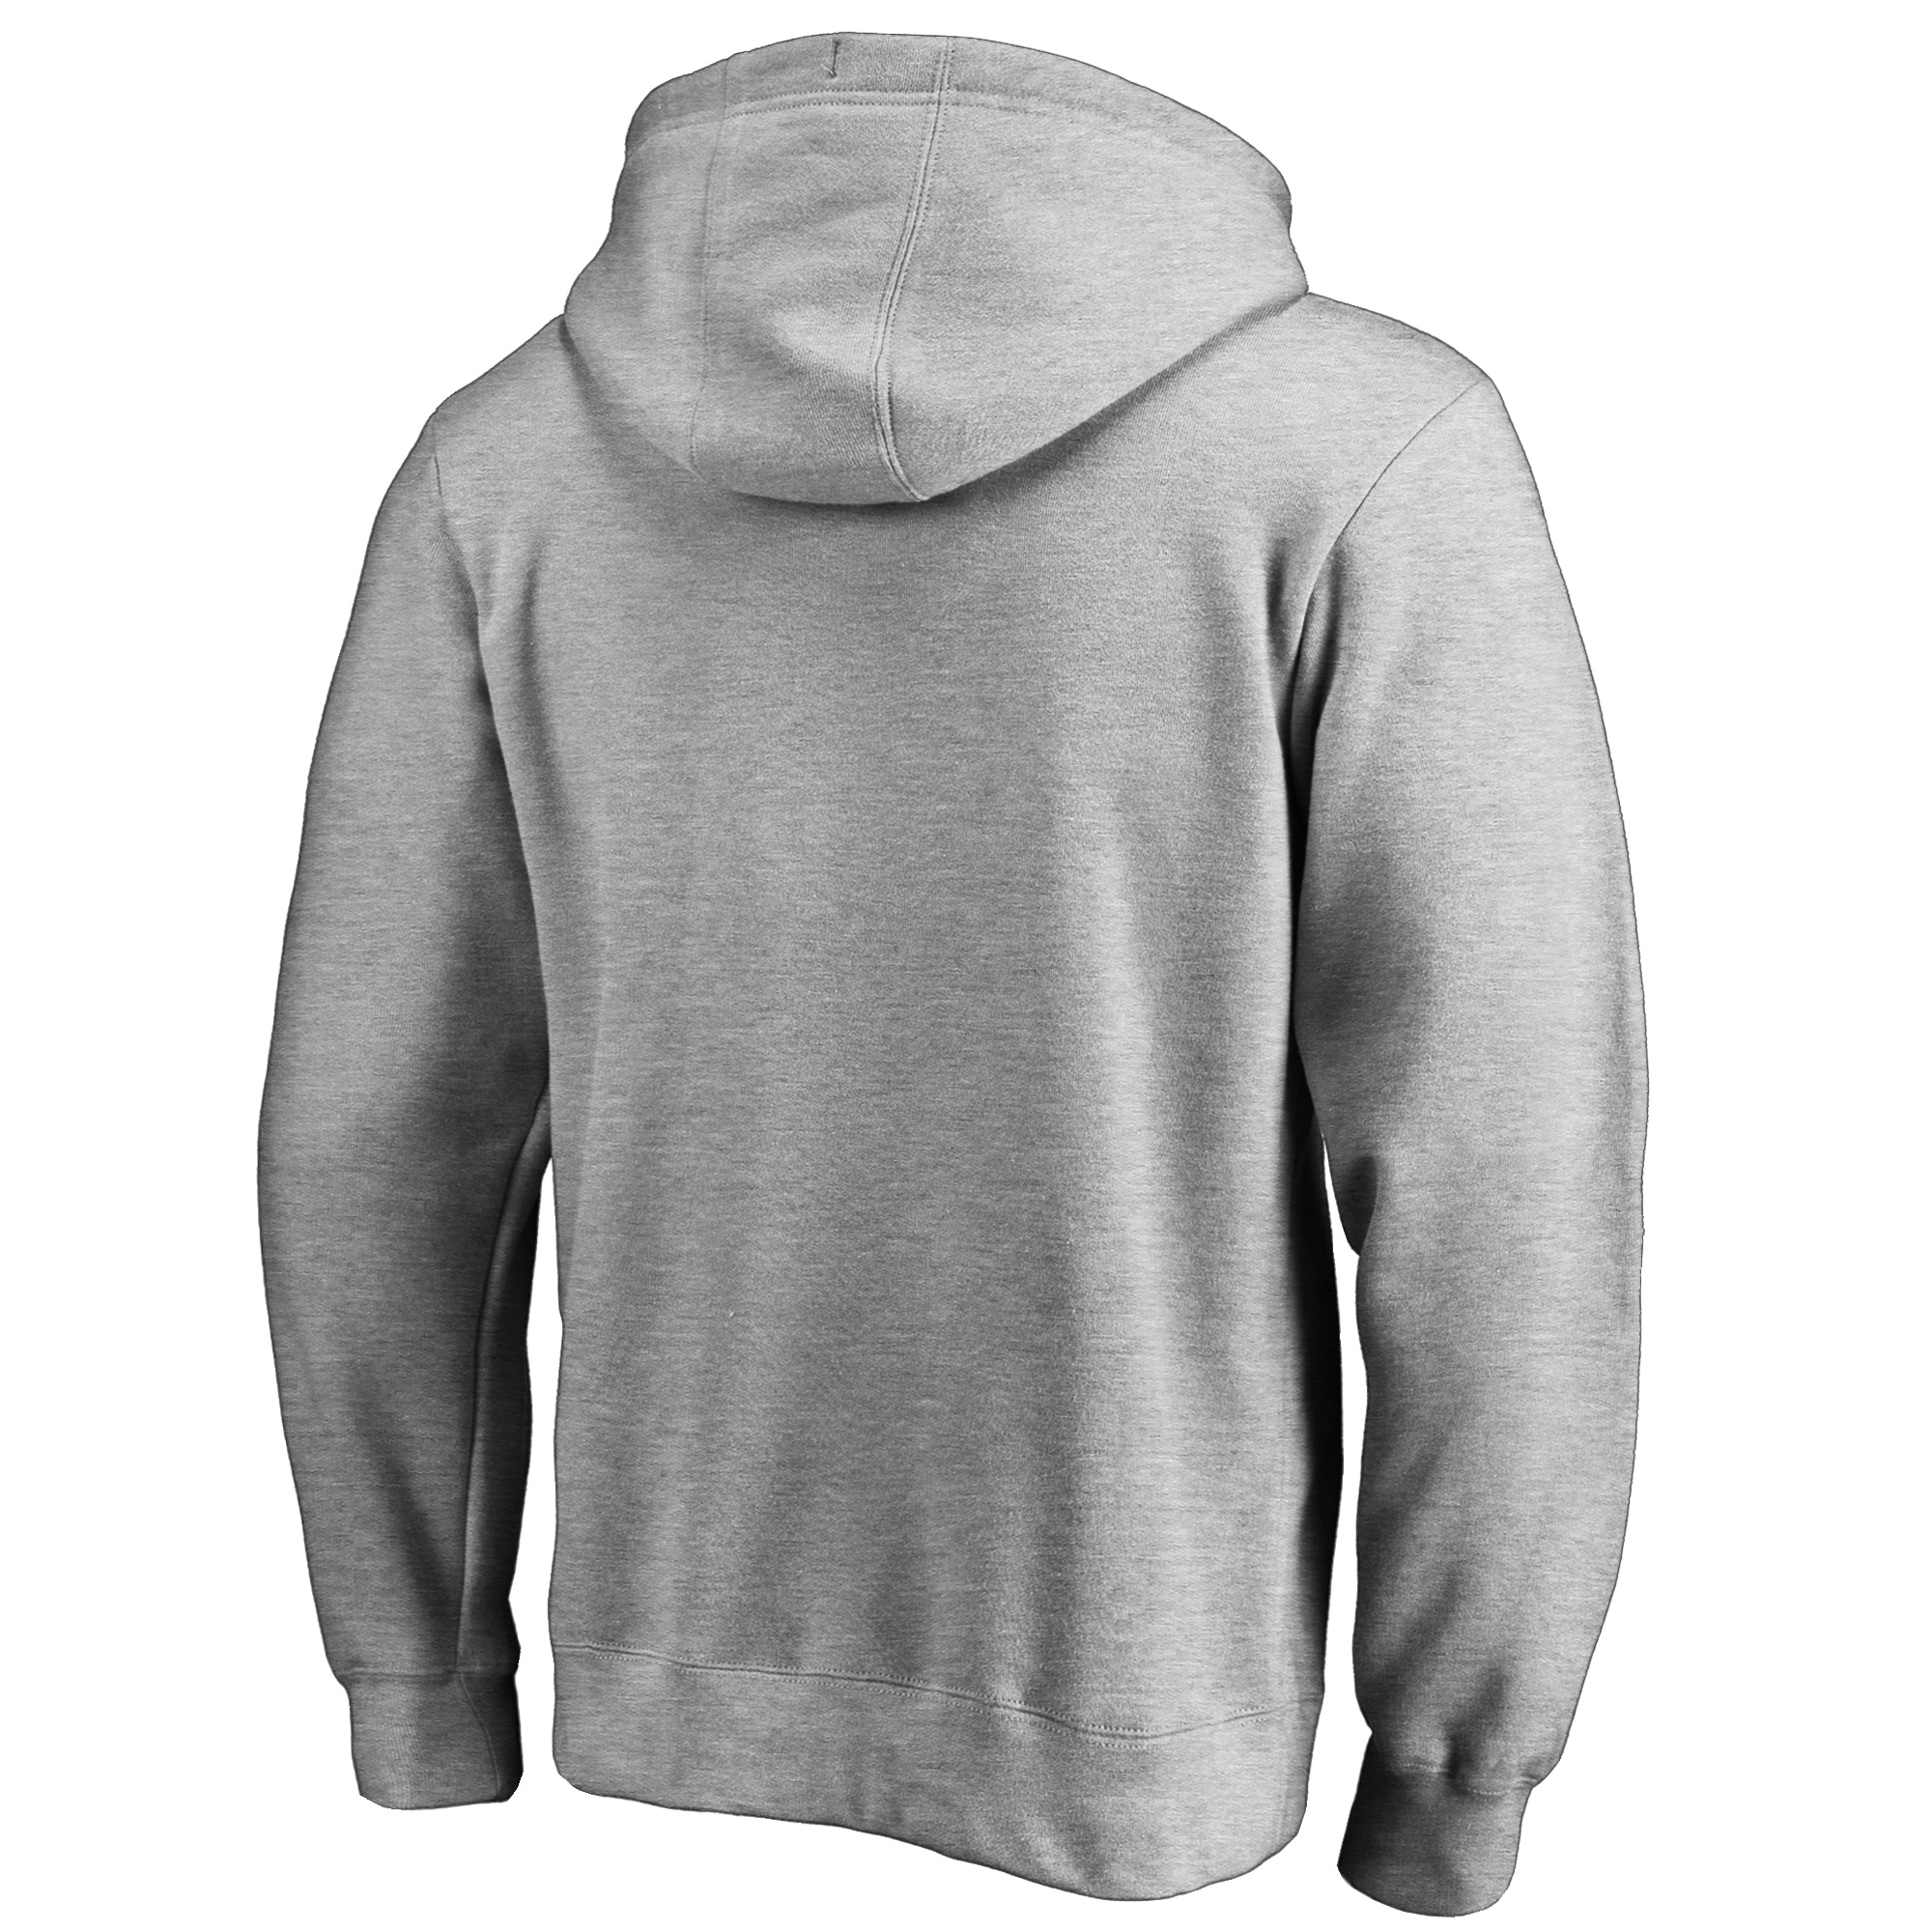 6f569d765 Carolina Panthers NFL Pro Line by Fanatics Branded Iconic Collection On Side  Stripe Big   Tall Pullover Hoodie - Ash - Walmart.com